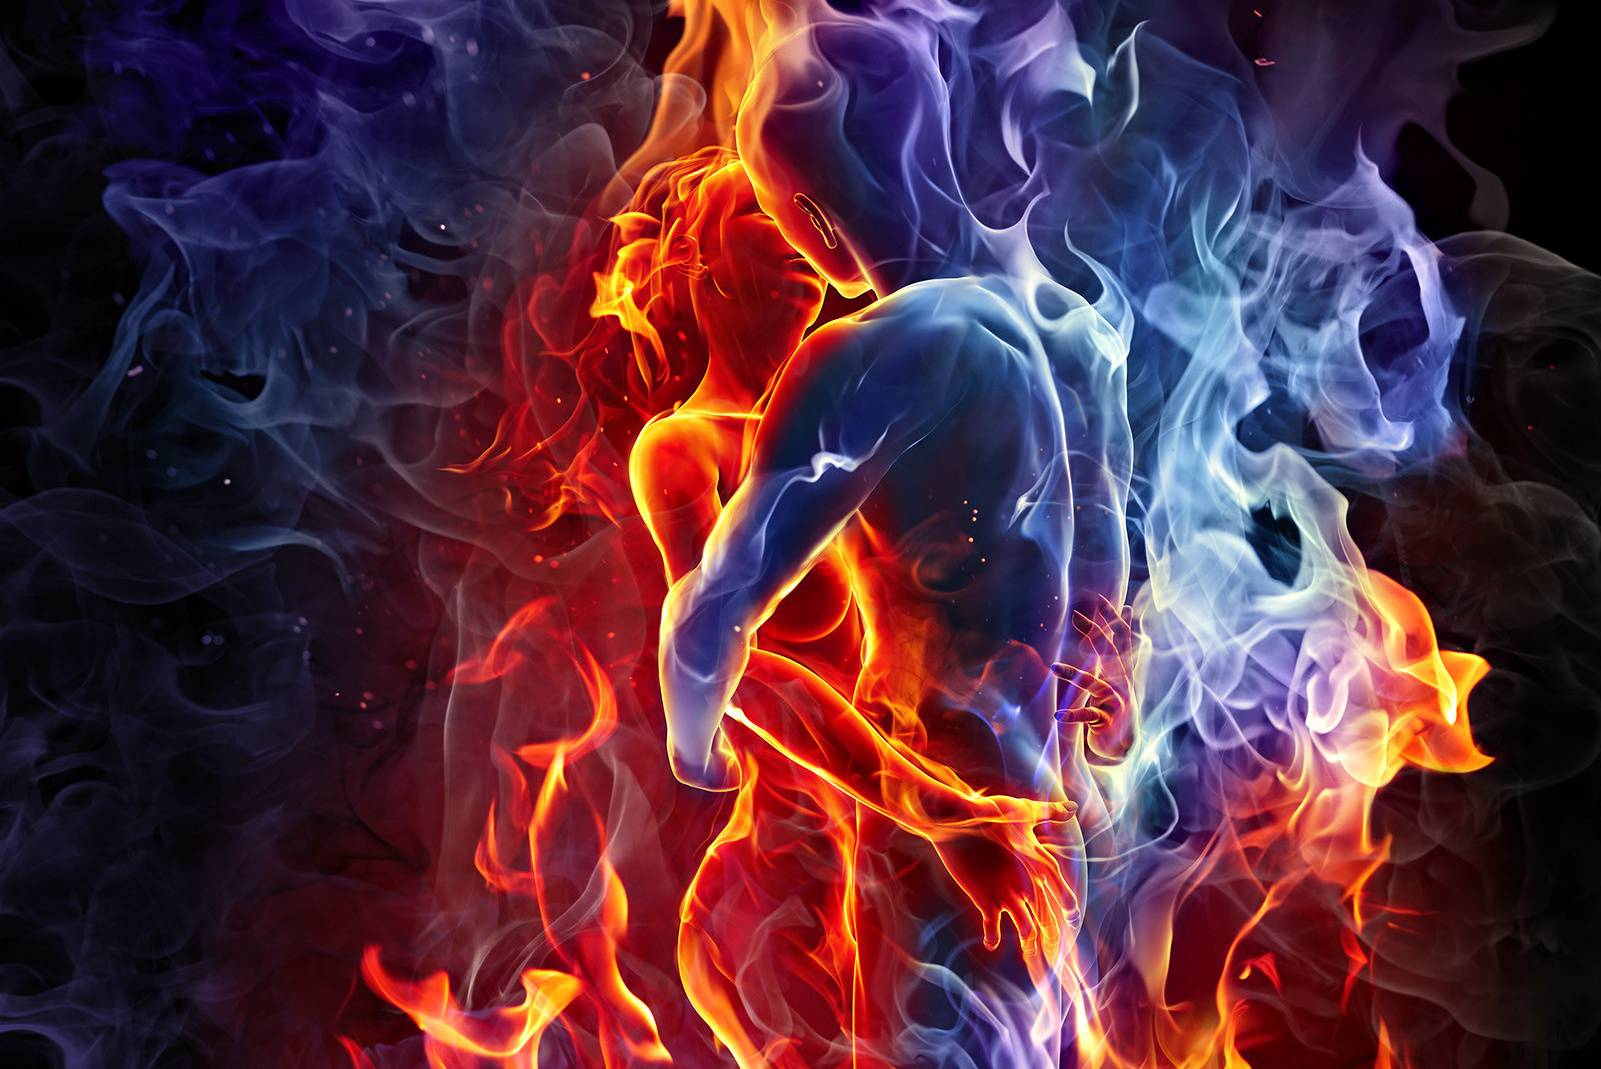 Couple In Fire